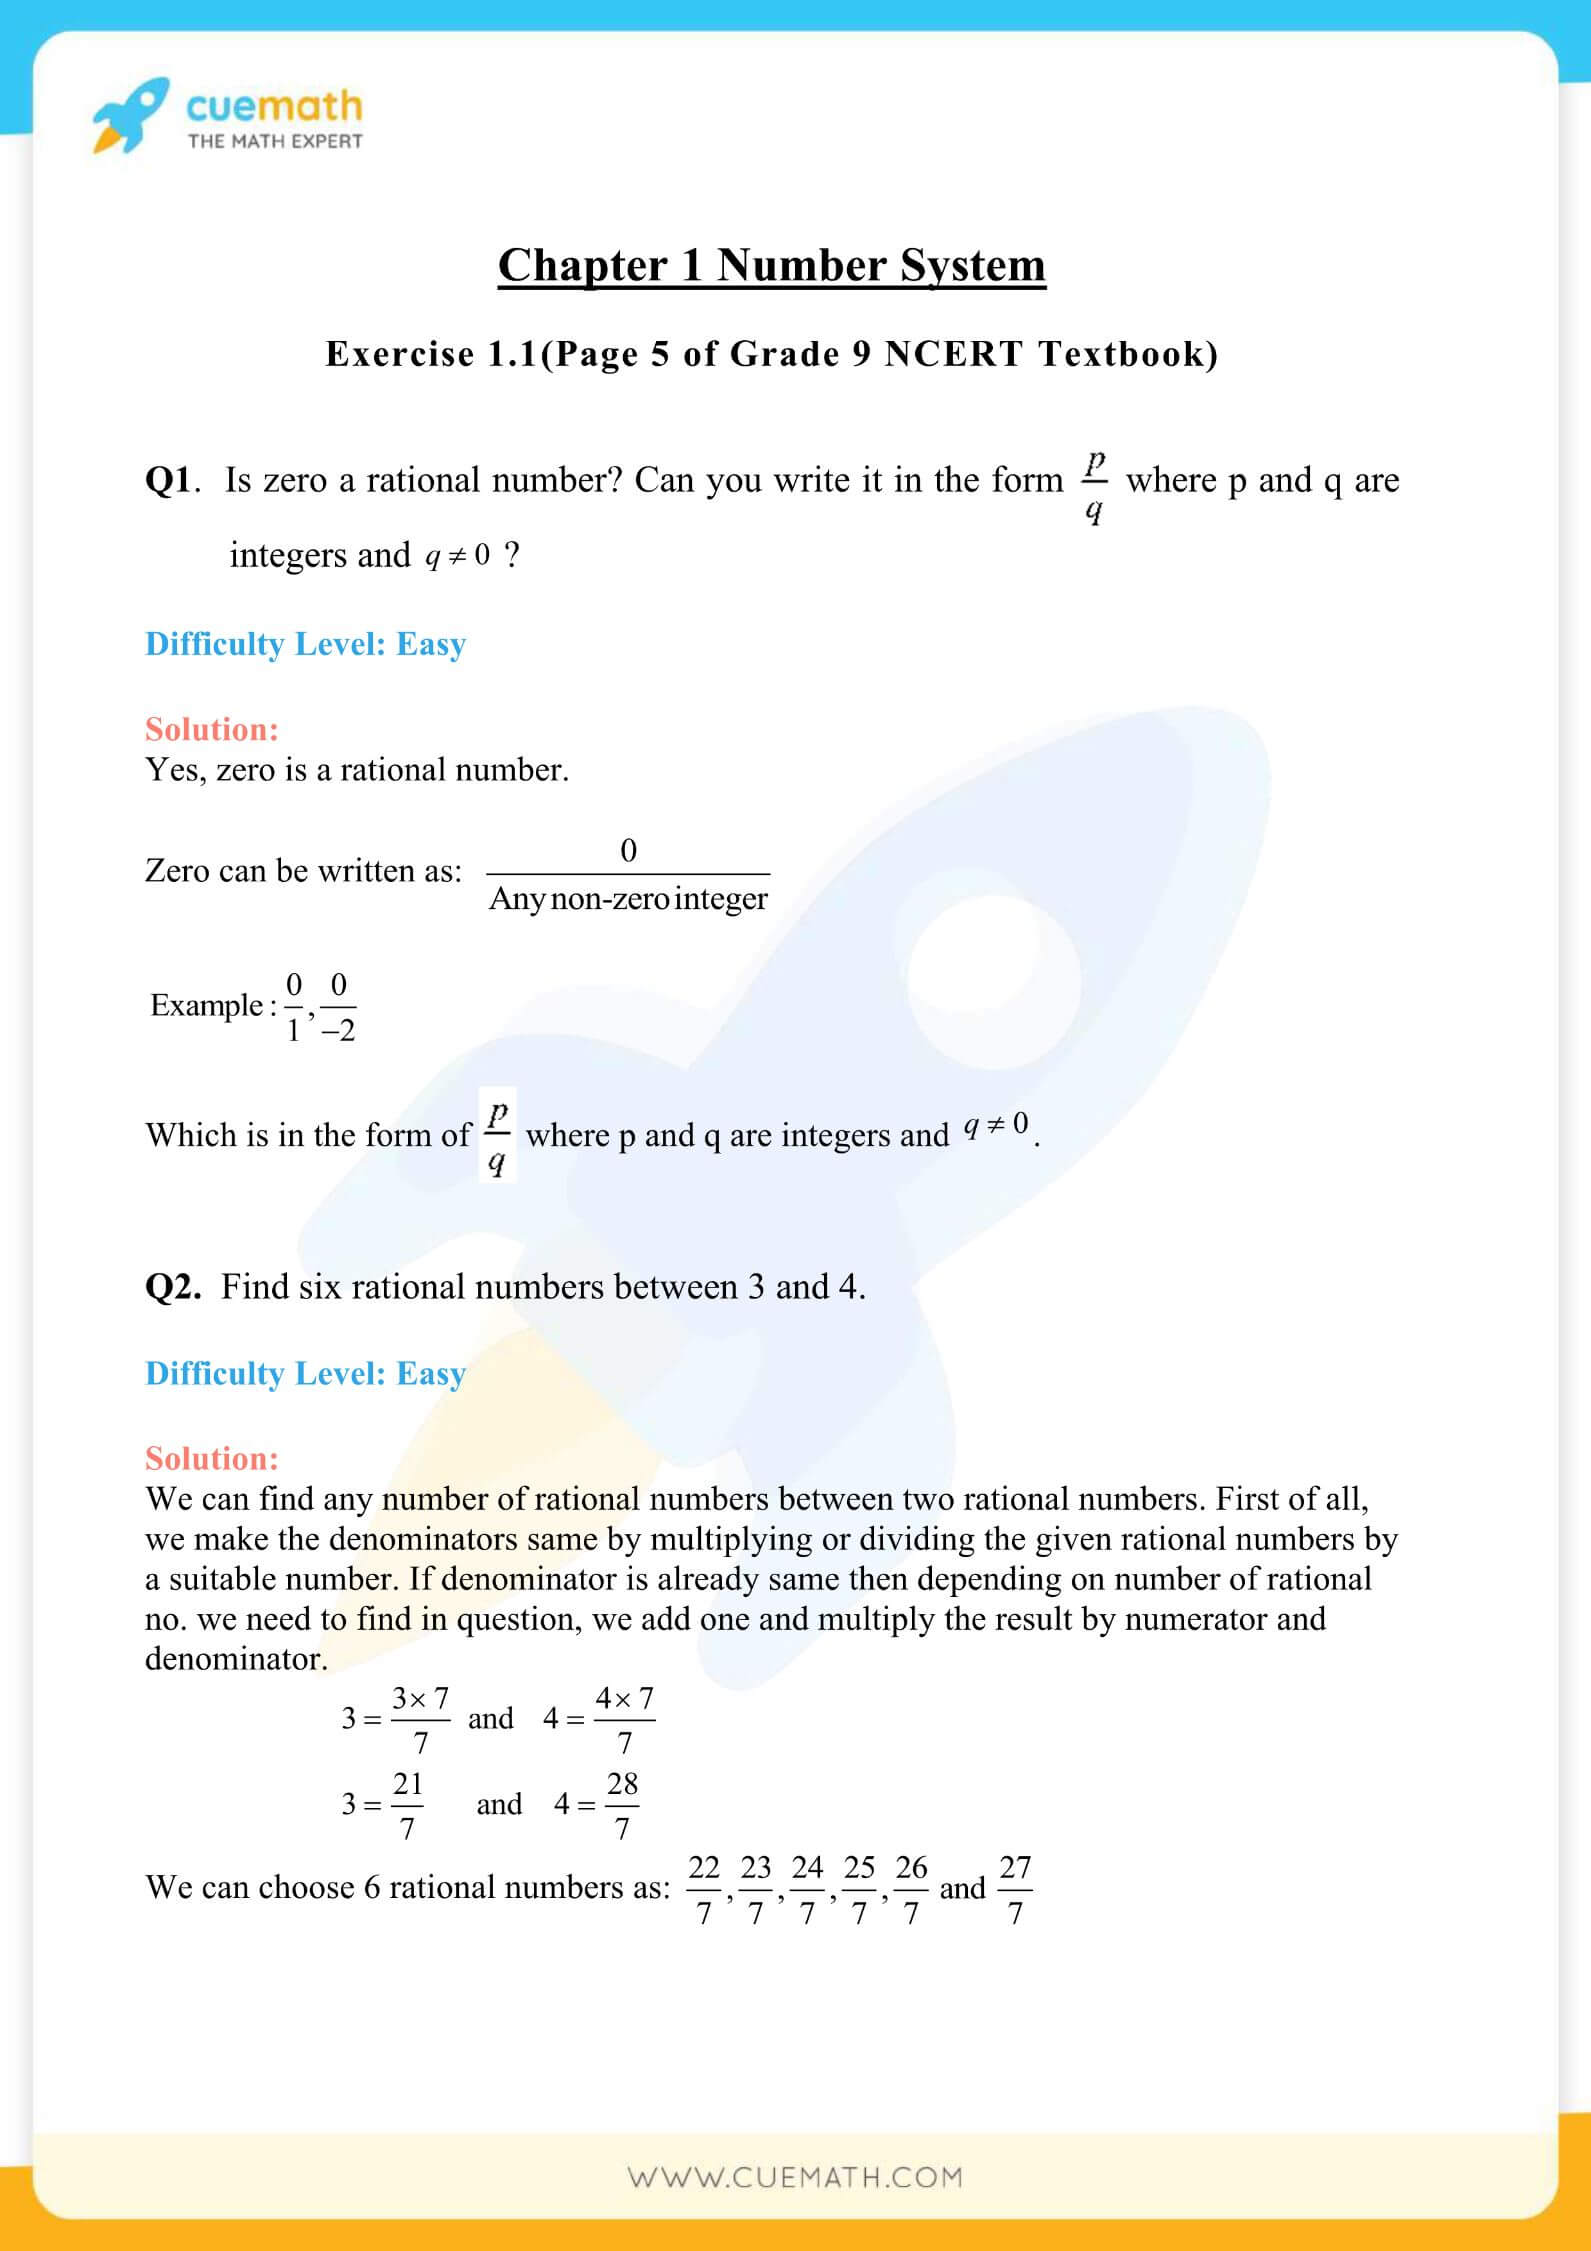 NCERT Solutions Class 9 Math Chapter 1 Exercise 1.1 1